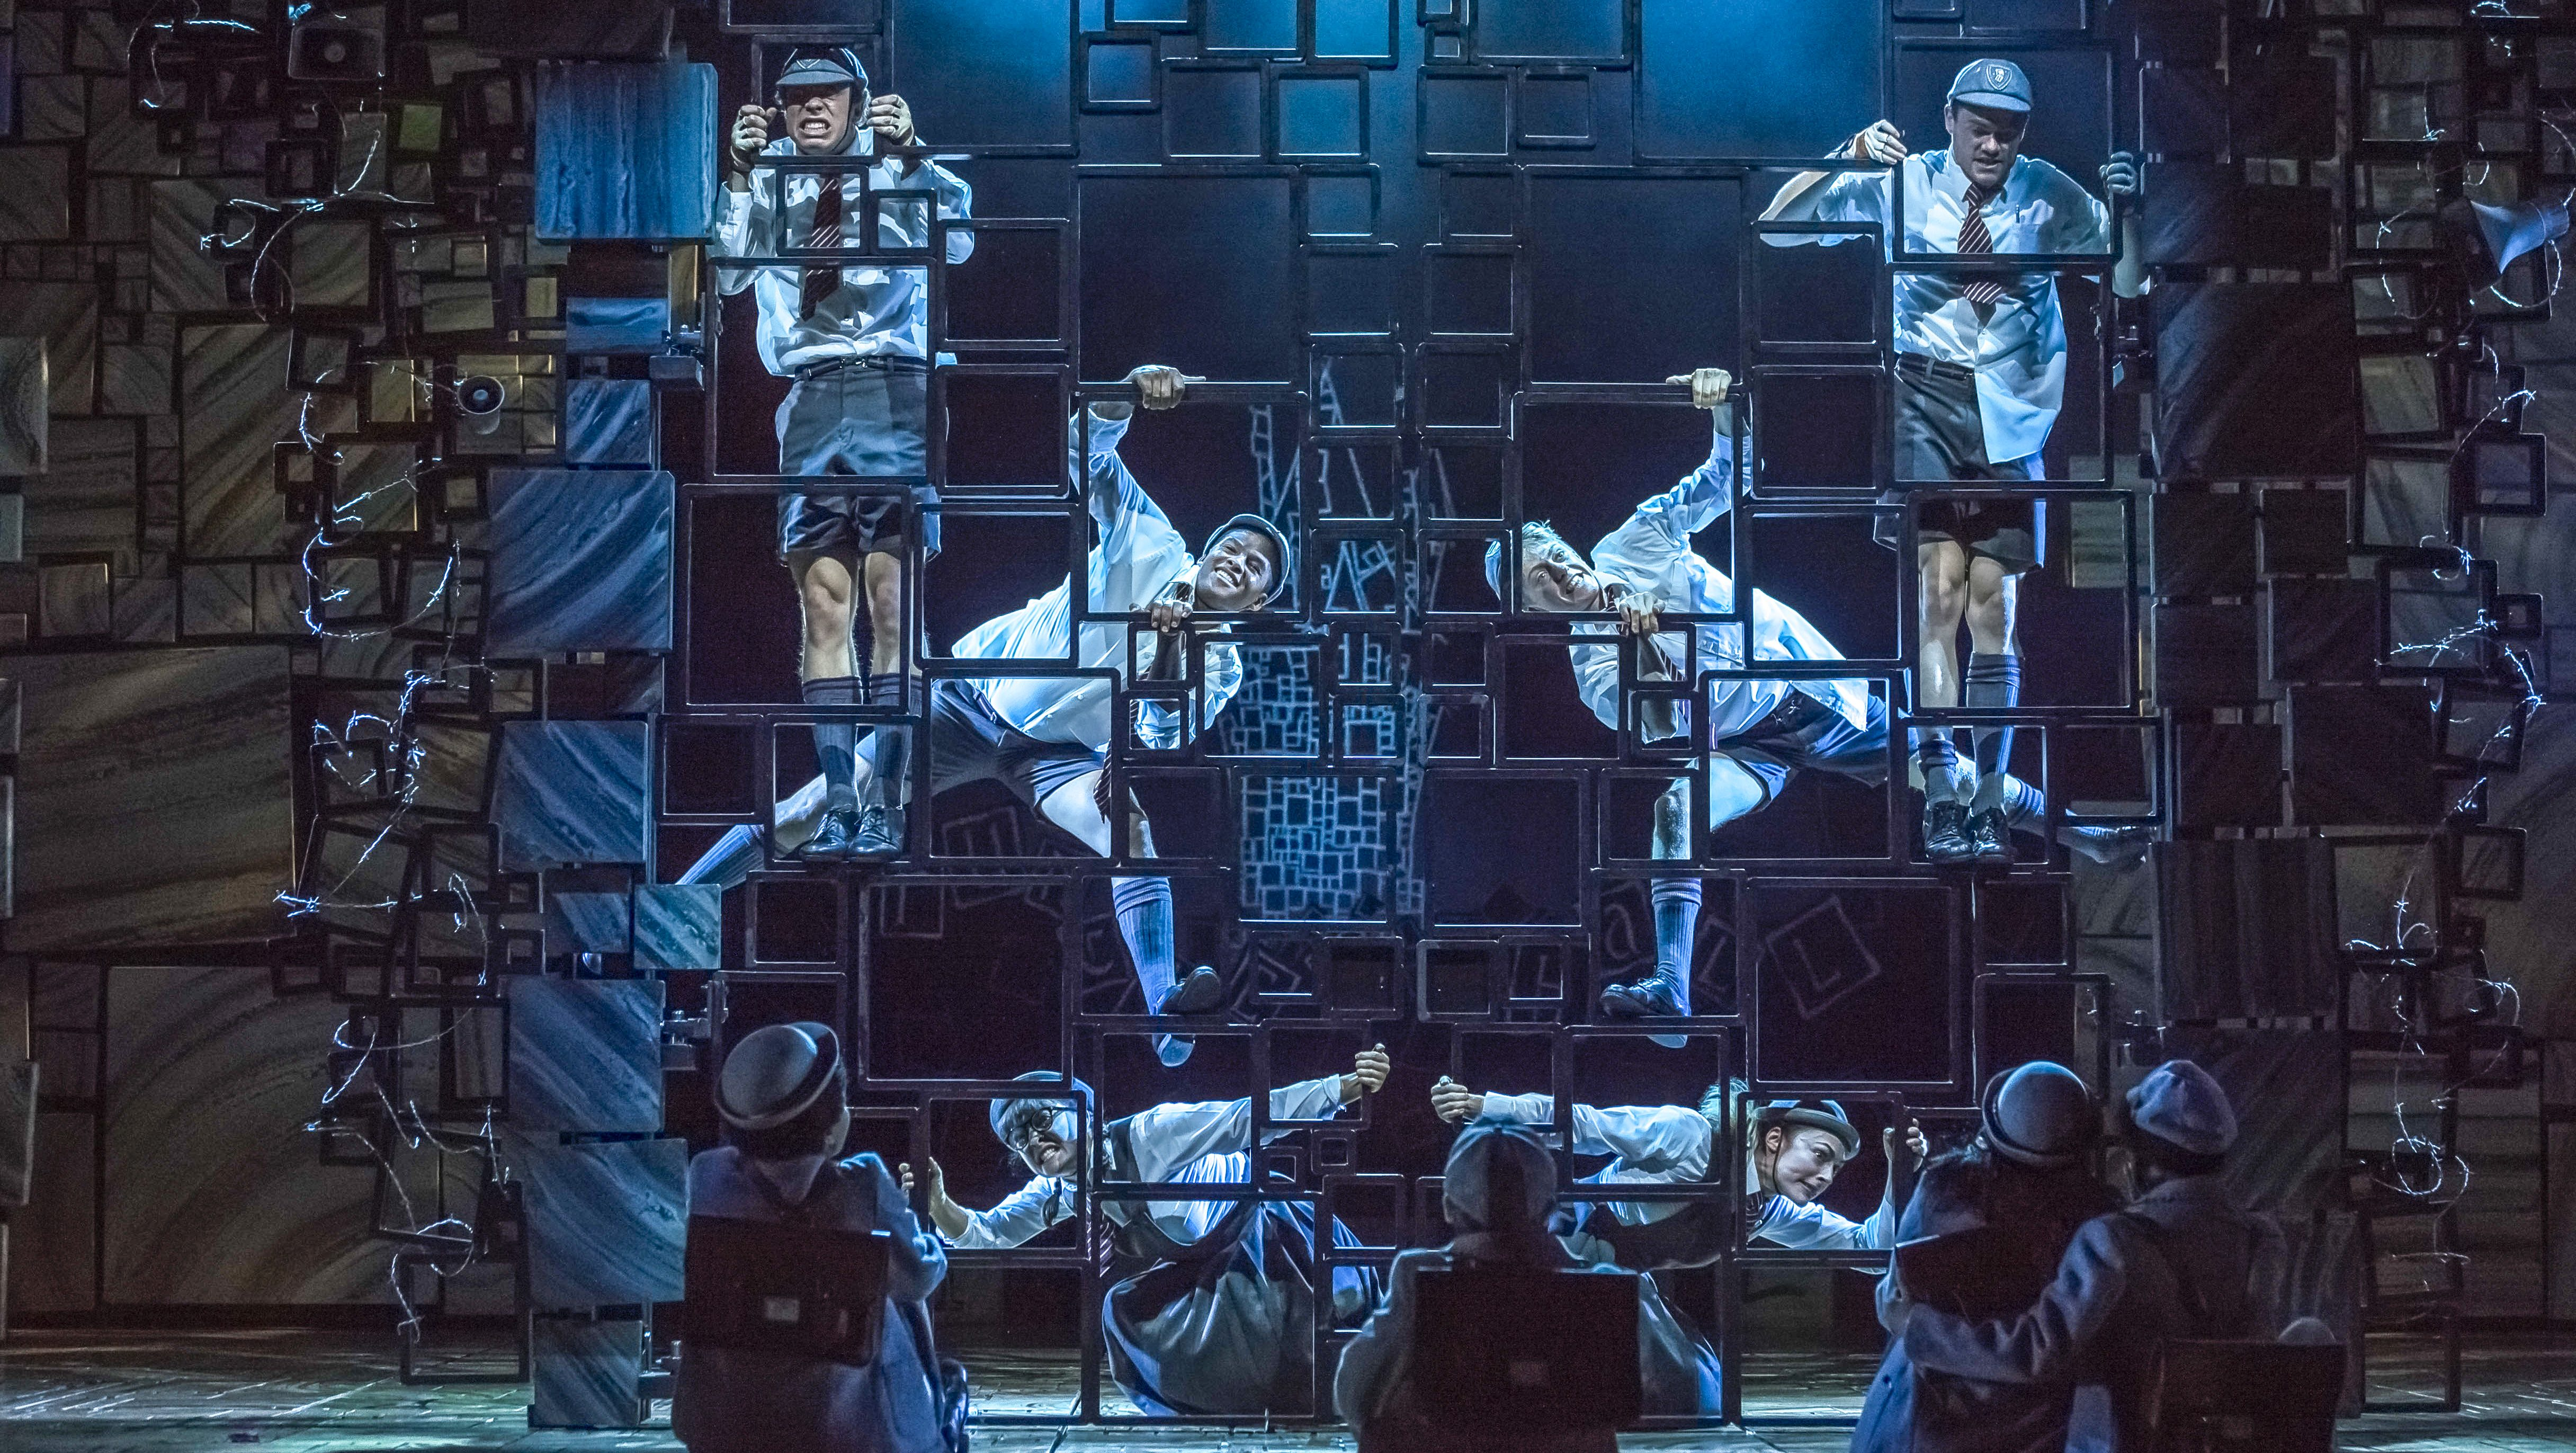 MATILDA THE MUSICAL(-3/17)